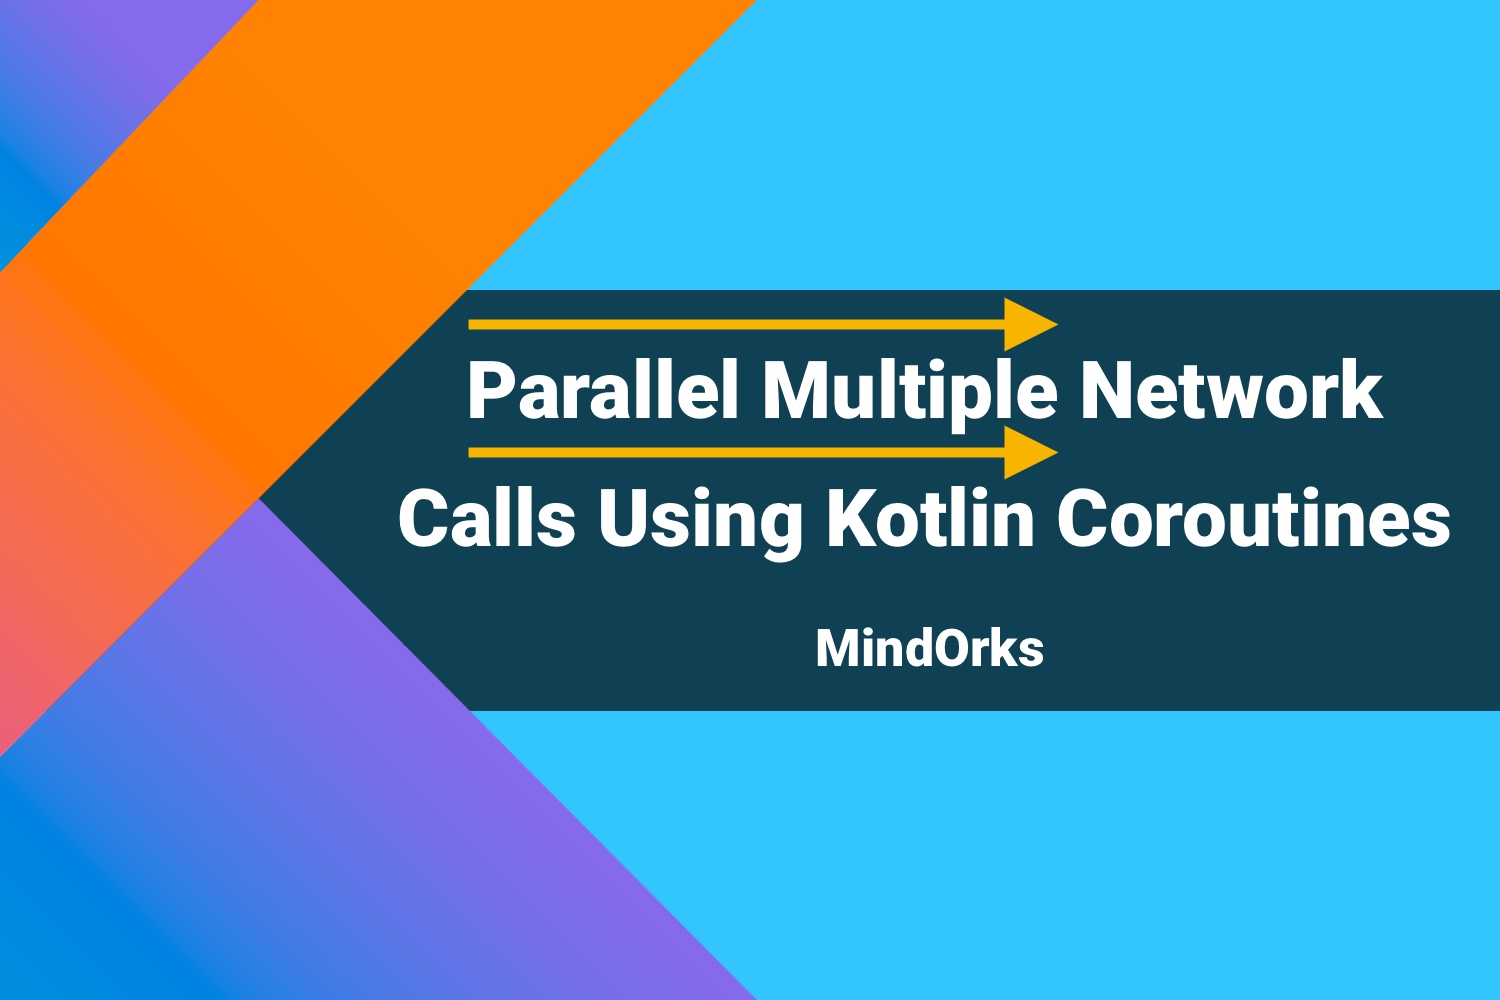 Parallel Multiple Network Calls Using Kotlin Coroutines